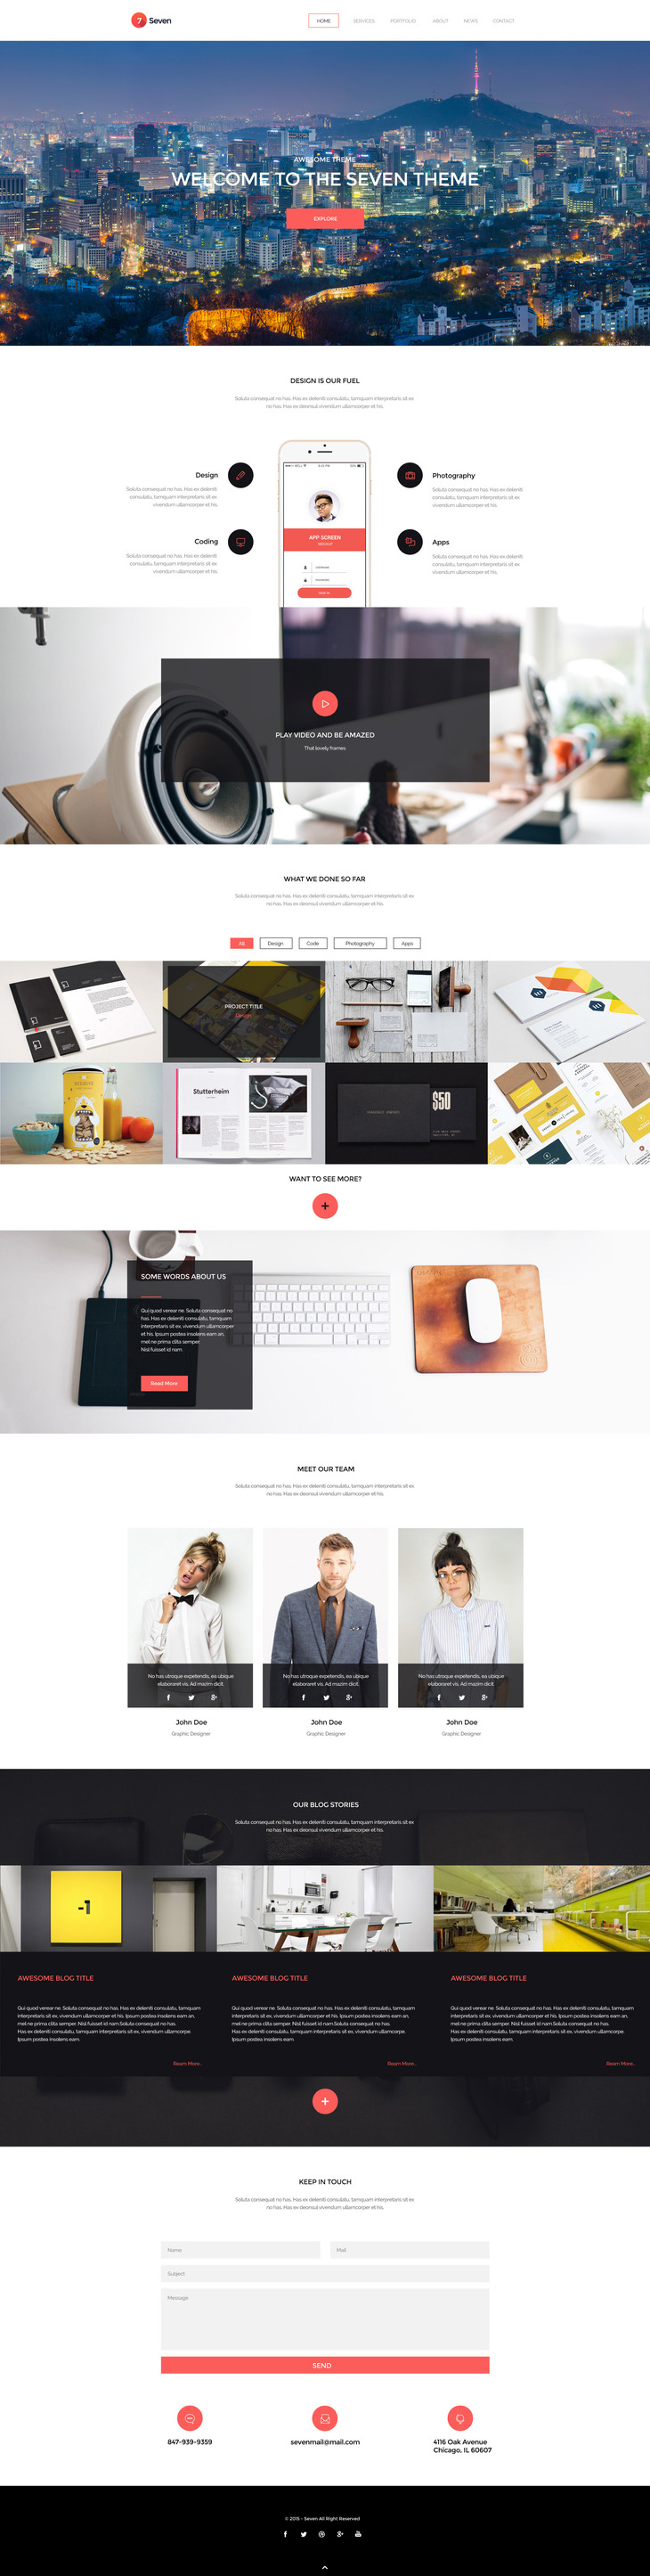 Seven - HTML Single Page Creative Portofolio Template - graphberry.com